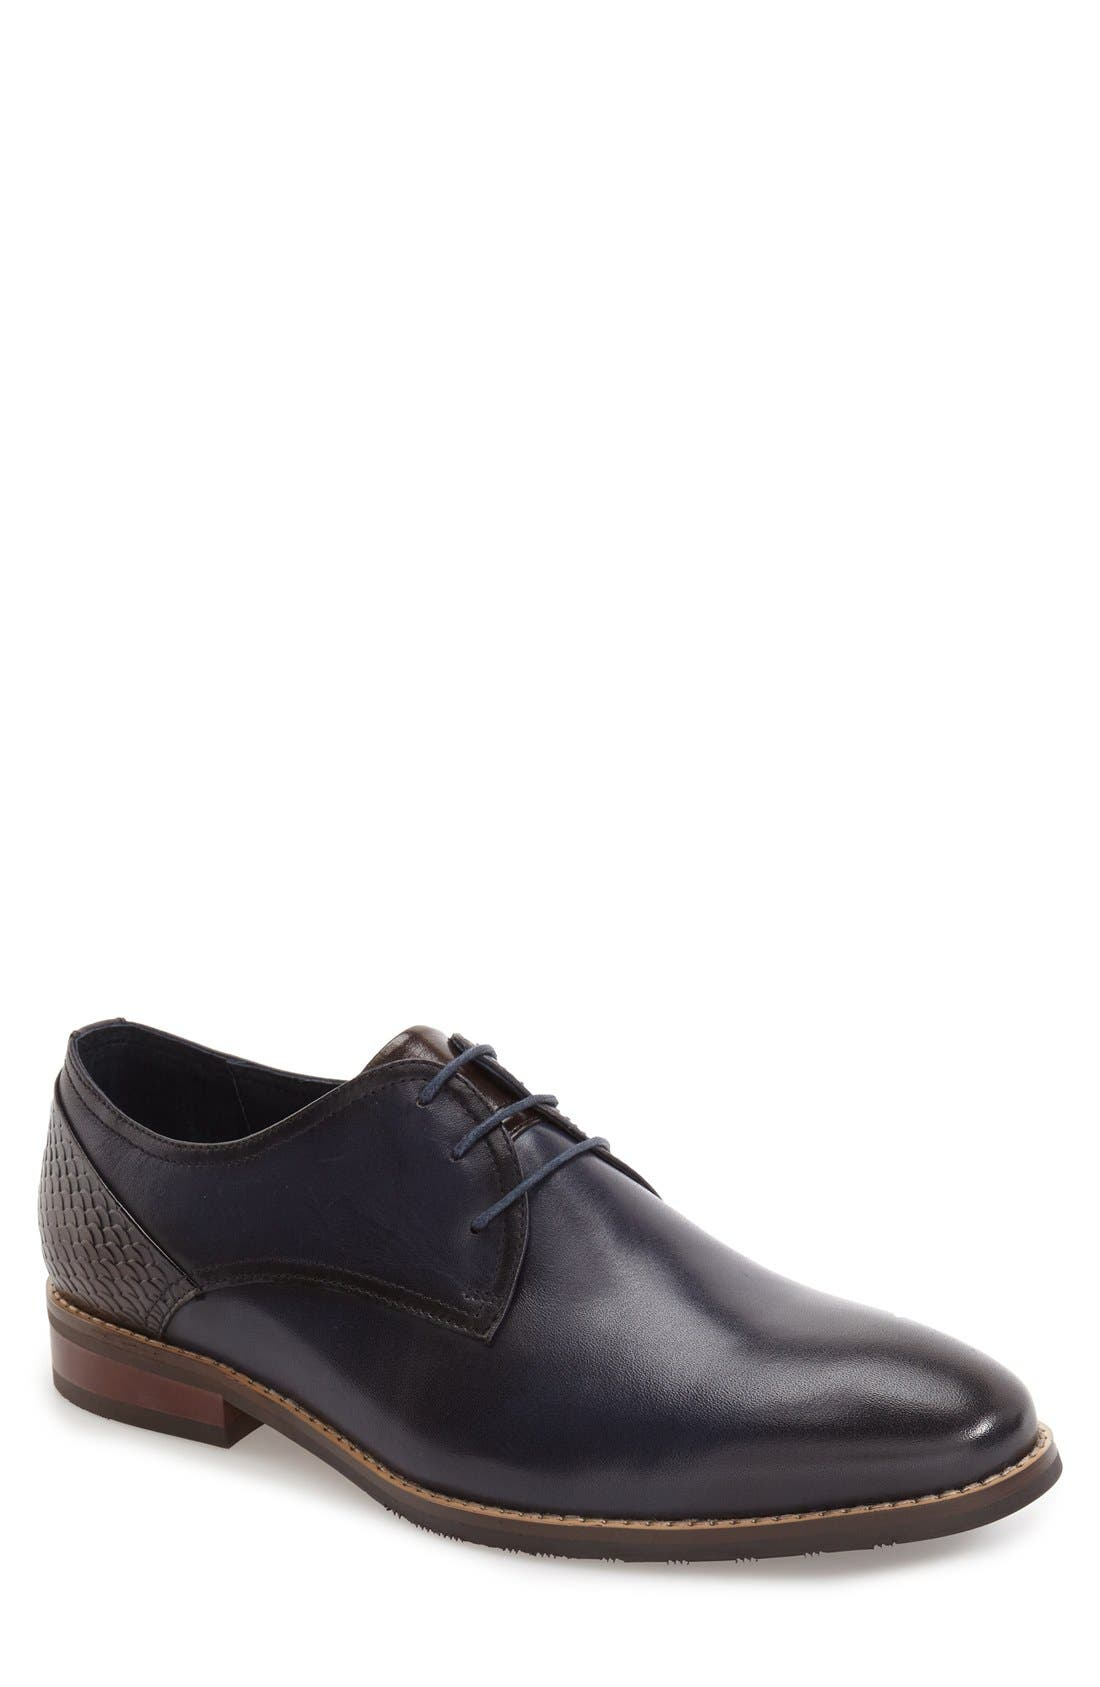 'Seattle' Plain Toe Derby,                         Main,                         color, Navy Leather